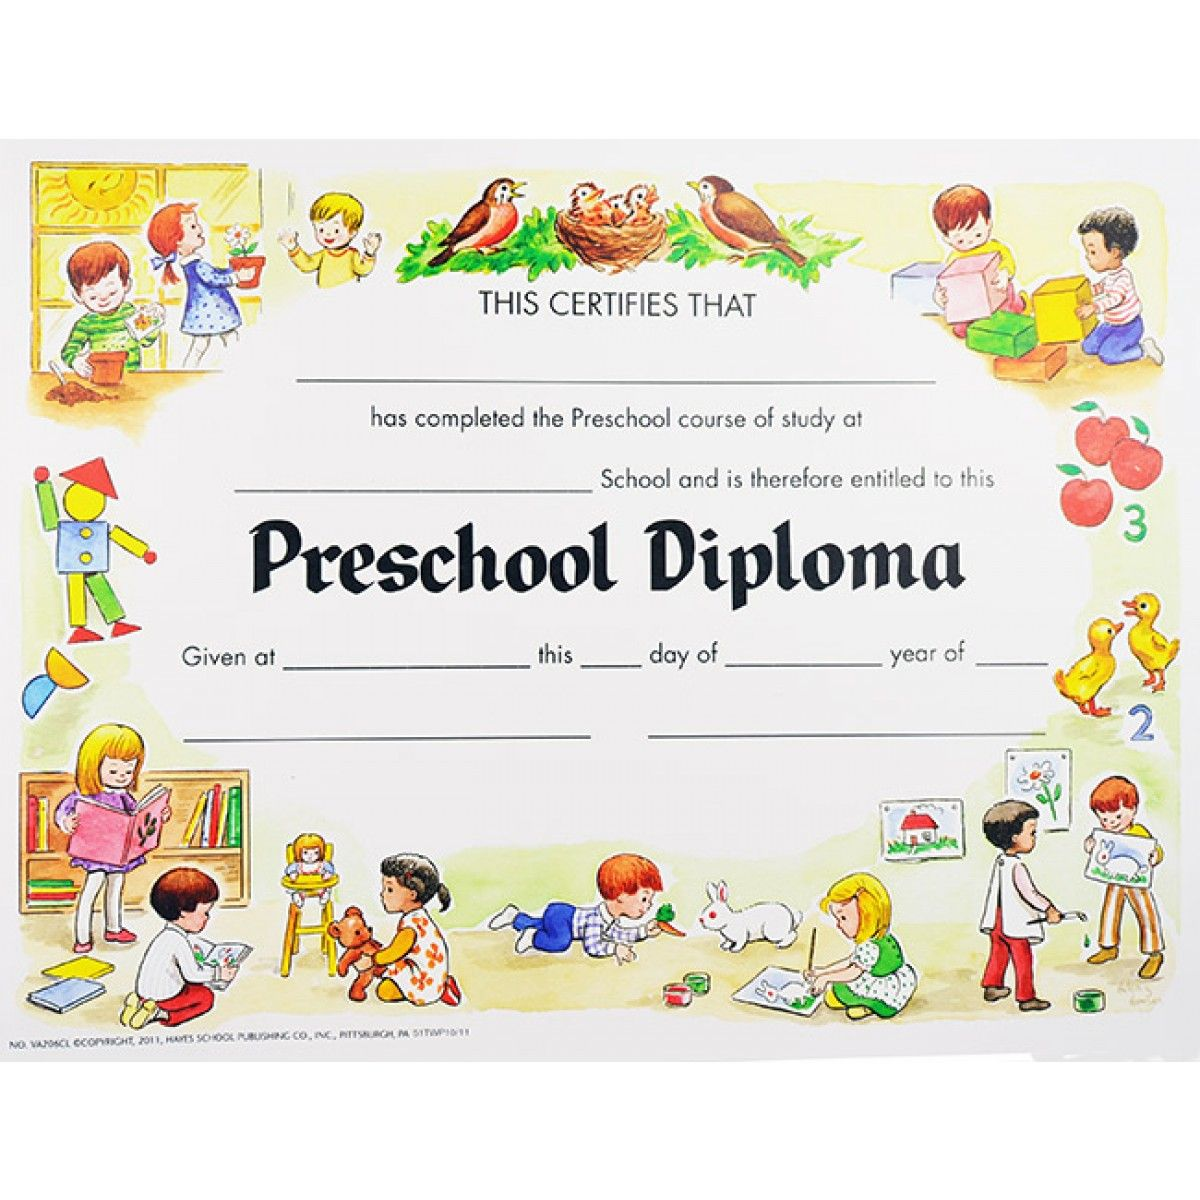 printable preschool diploma  Preschool Diploma | School | Pinterest | School, Game resources ...